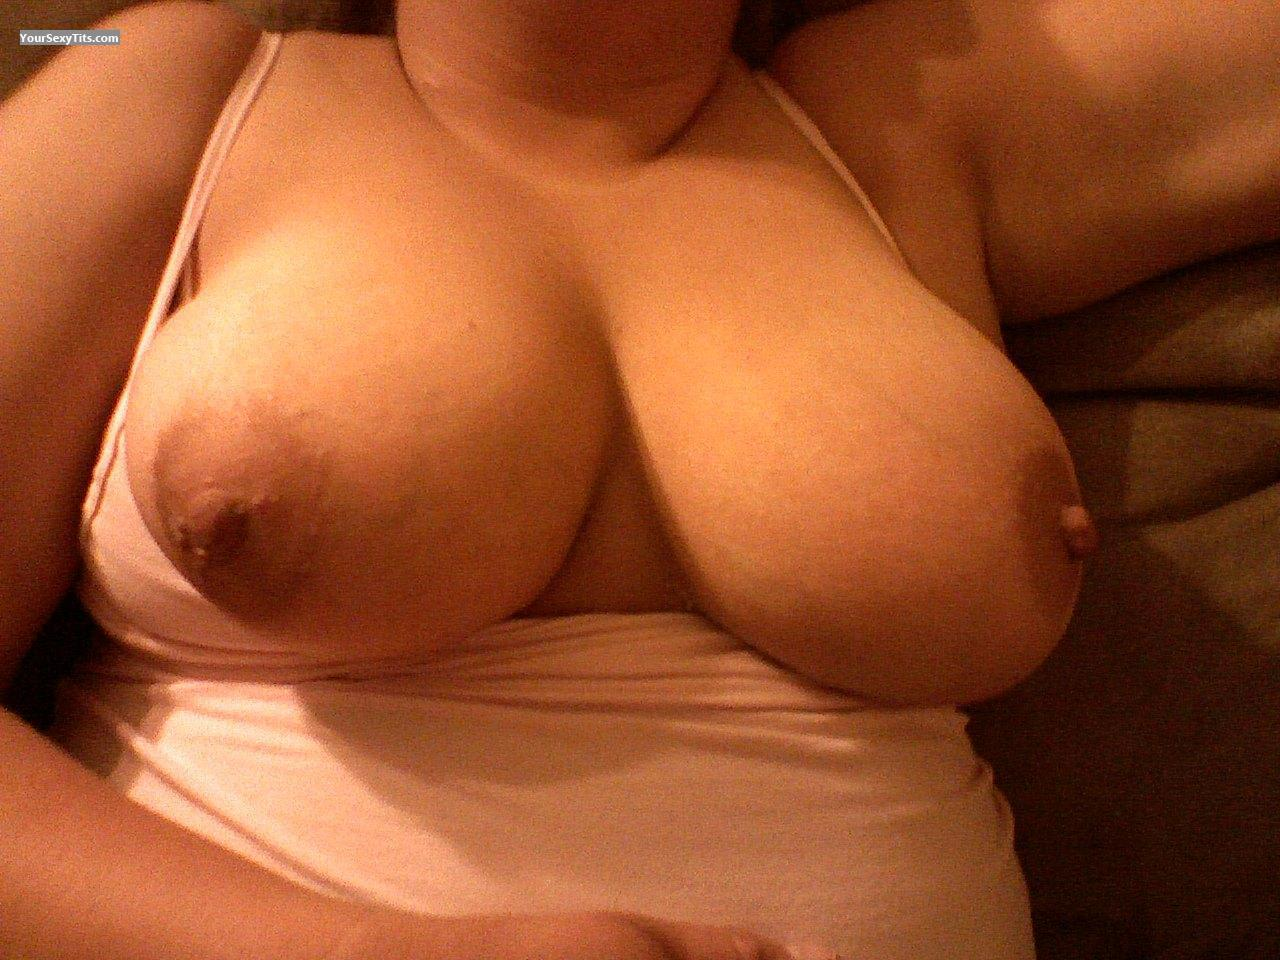 Tit Flash: Big Tits - Cc1868 from United States